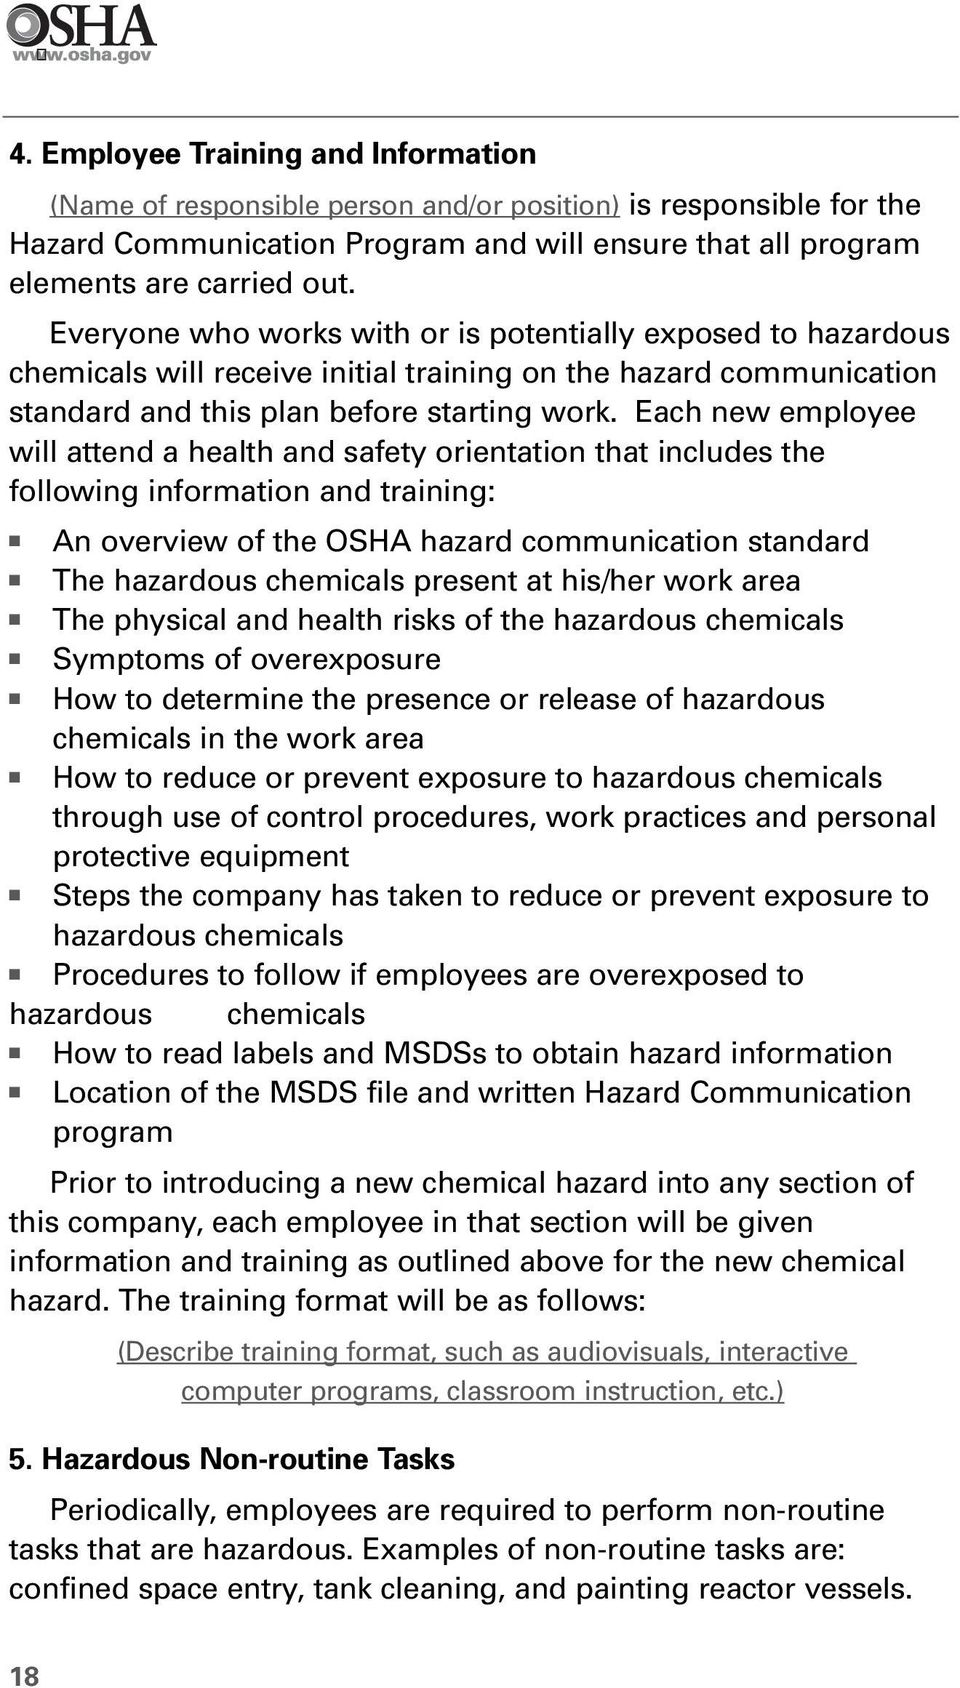 Each new employee will attend a health and safety orientation that includes the following information and training: An overview of the OSHA hazard communication standard The hazardous chemicals